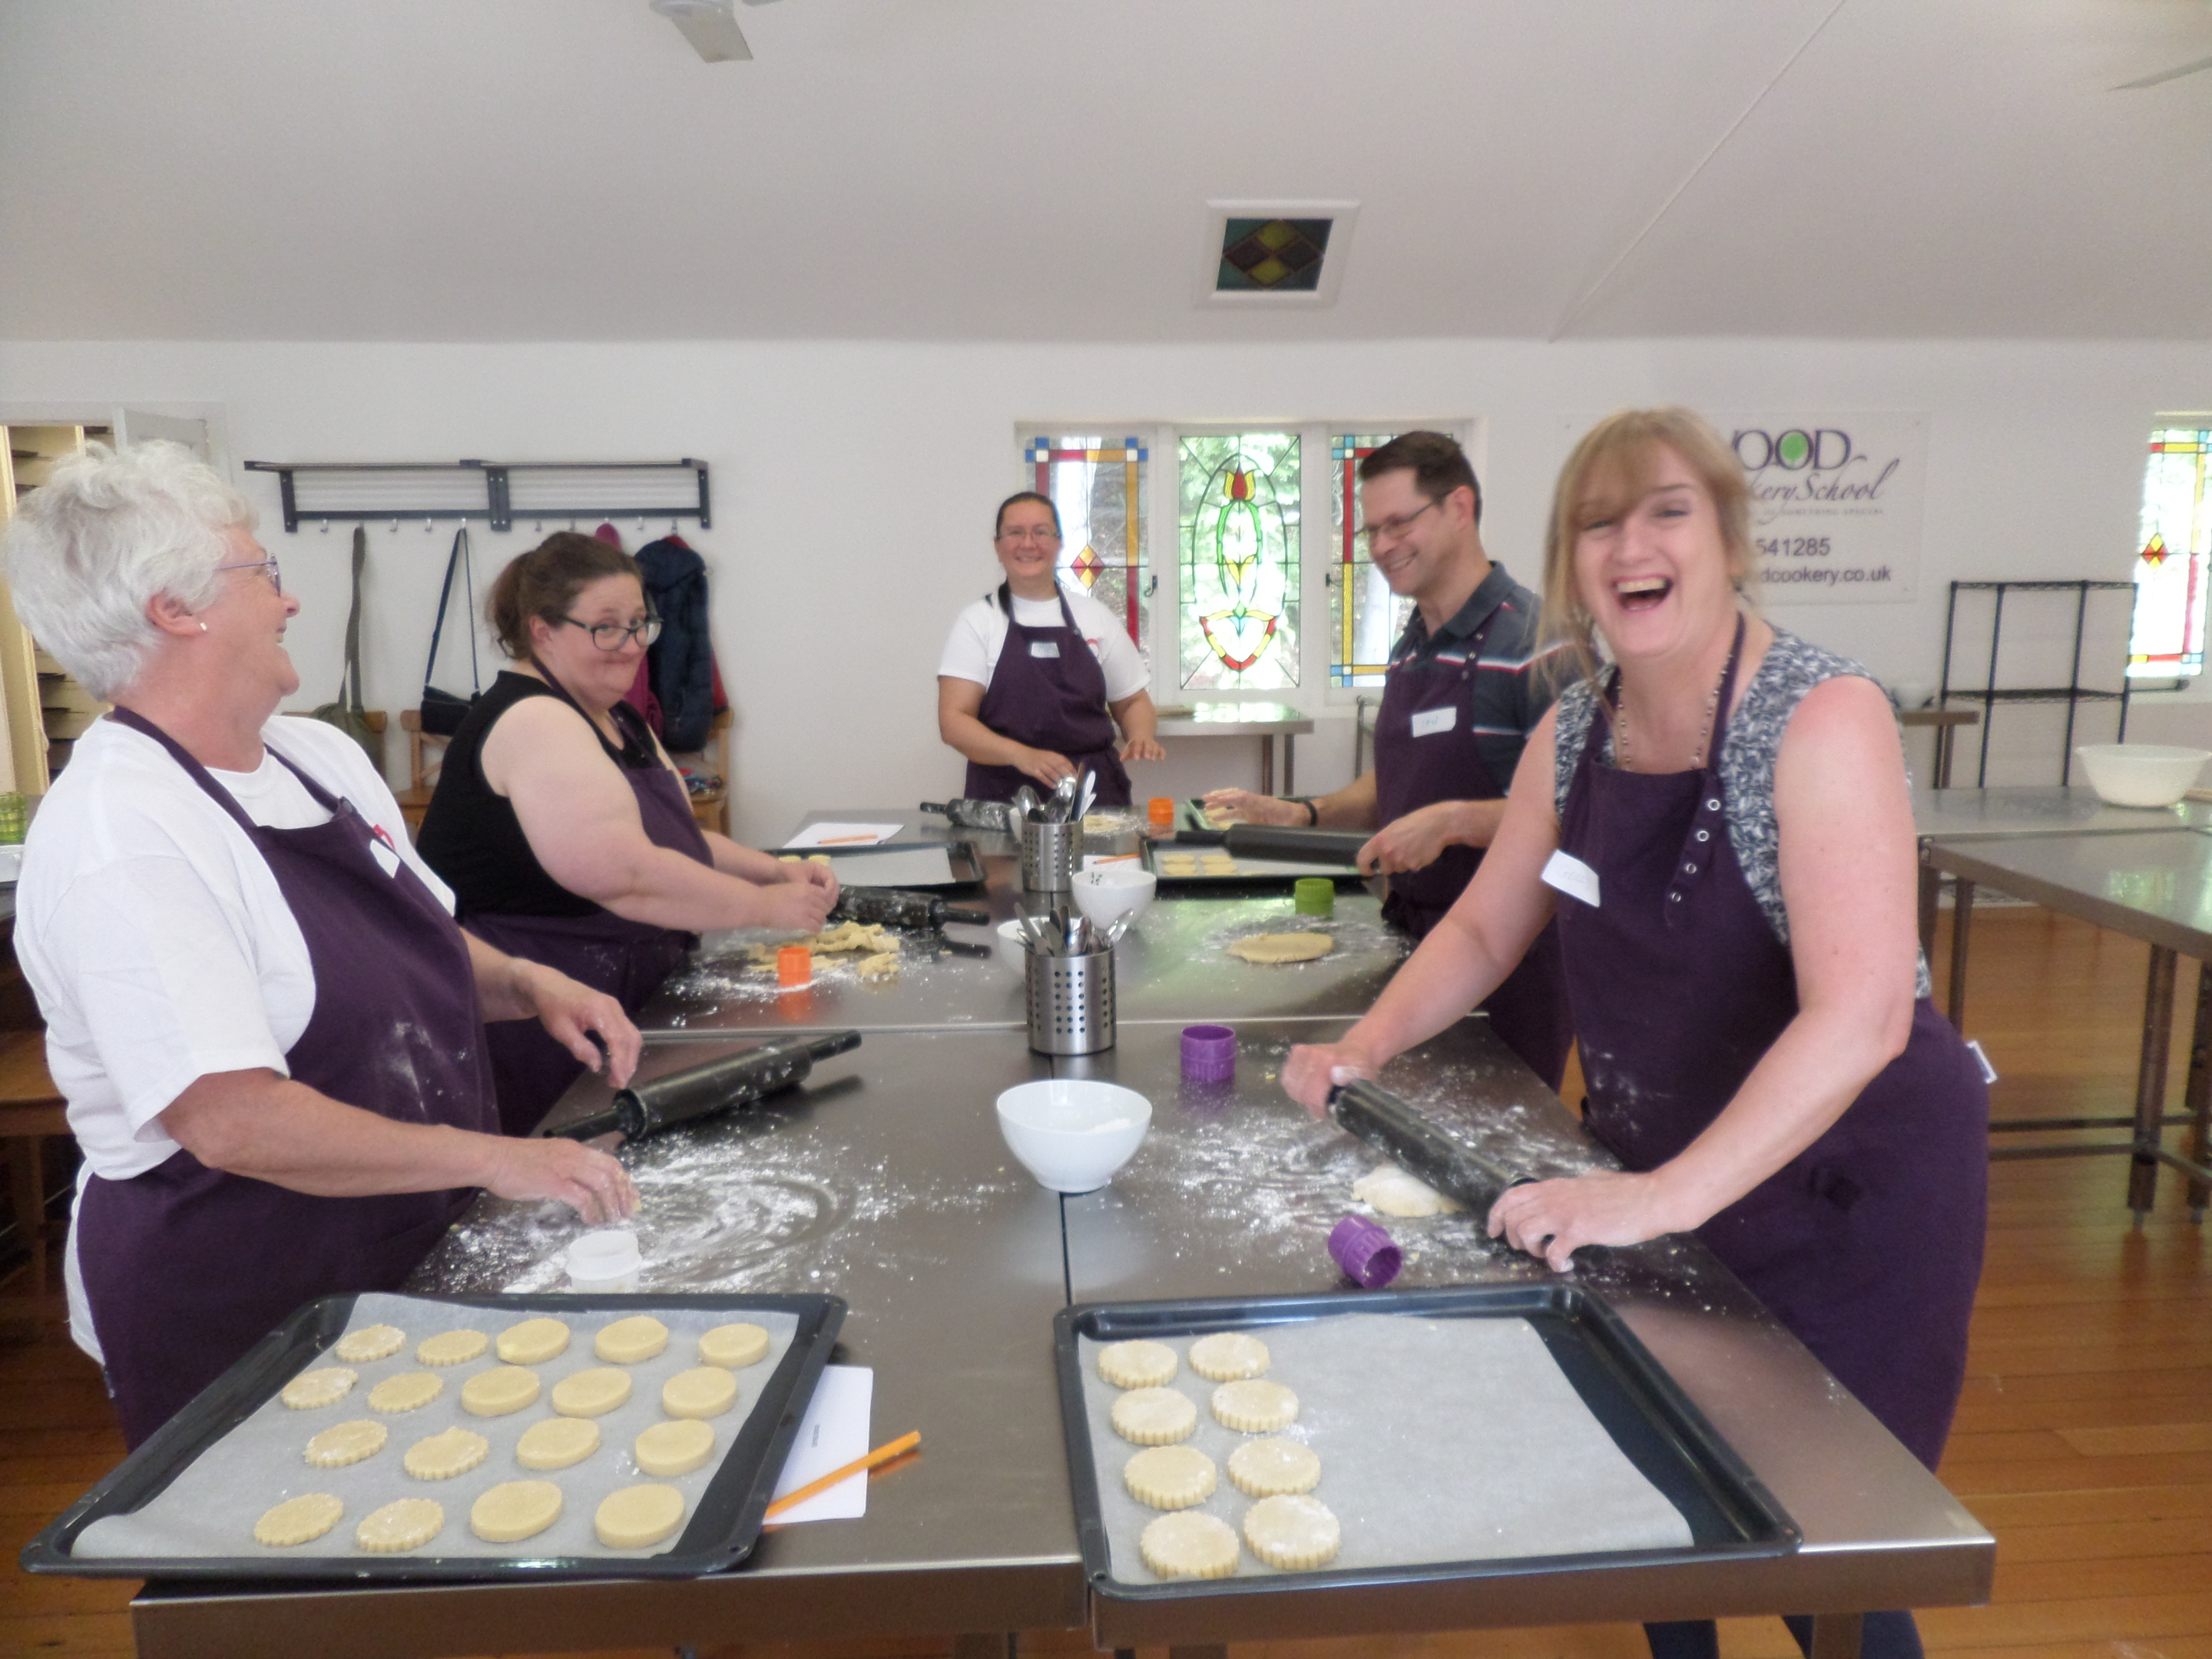 The would-be bakers made scones and biscuits during the class.